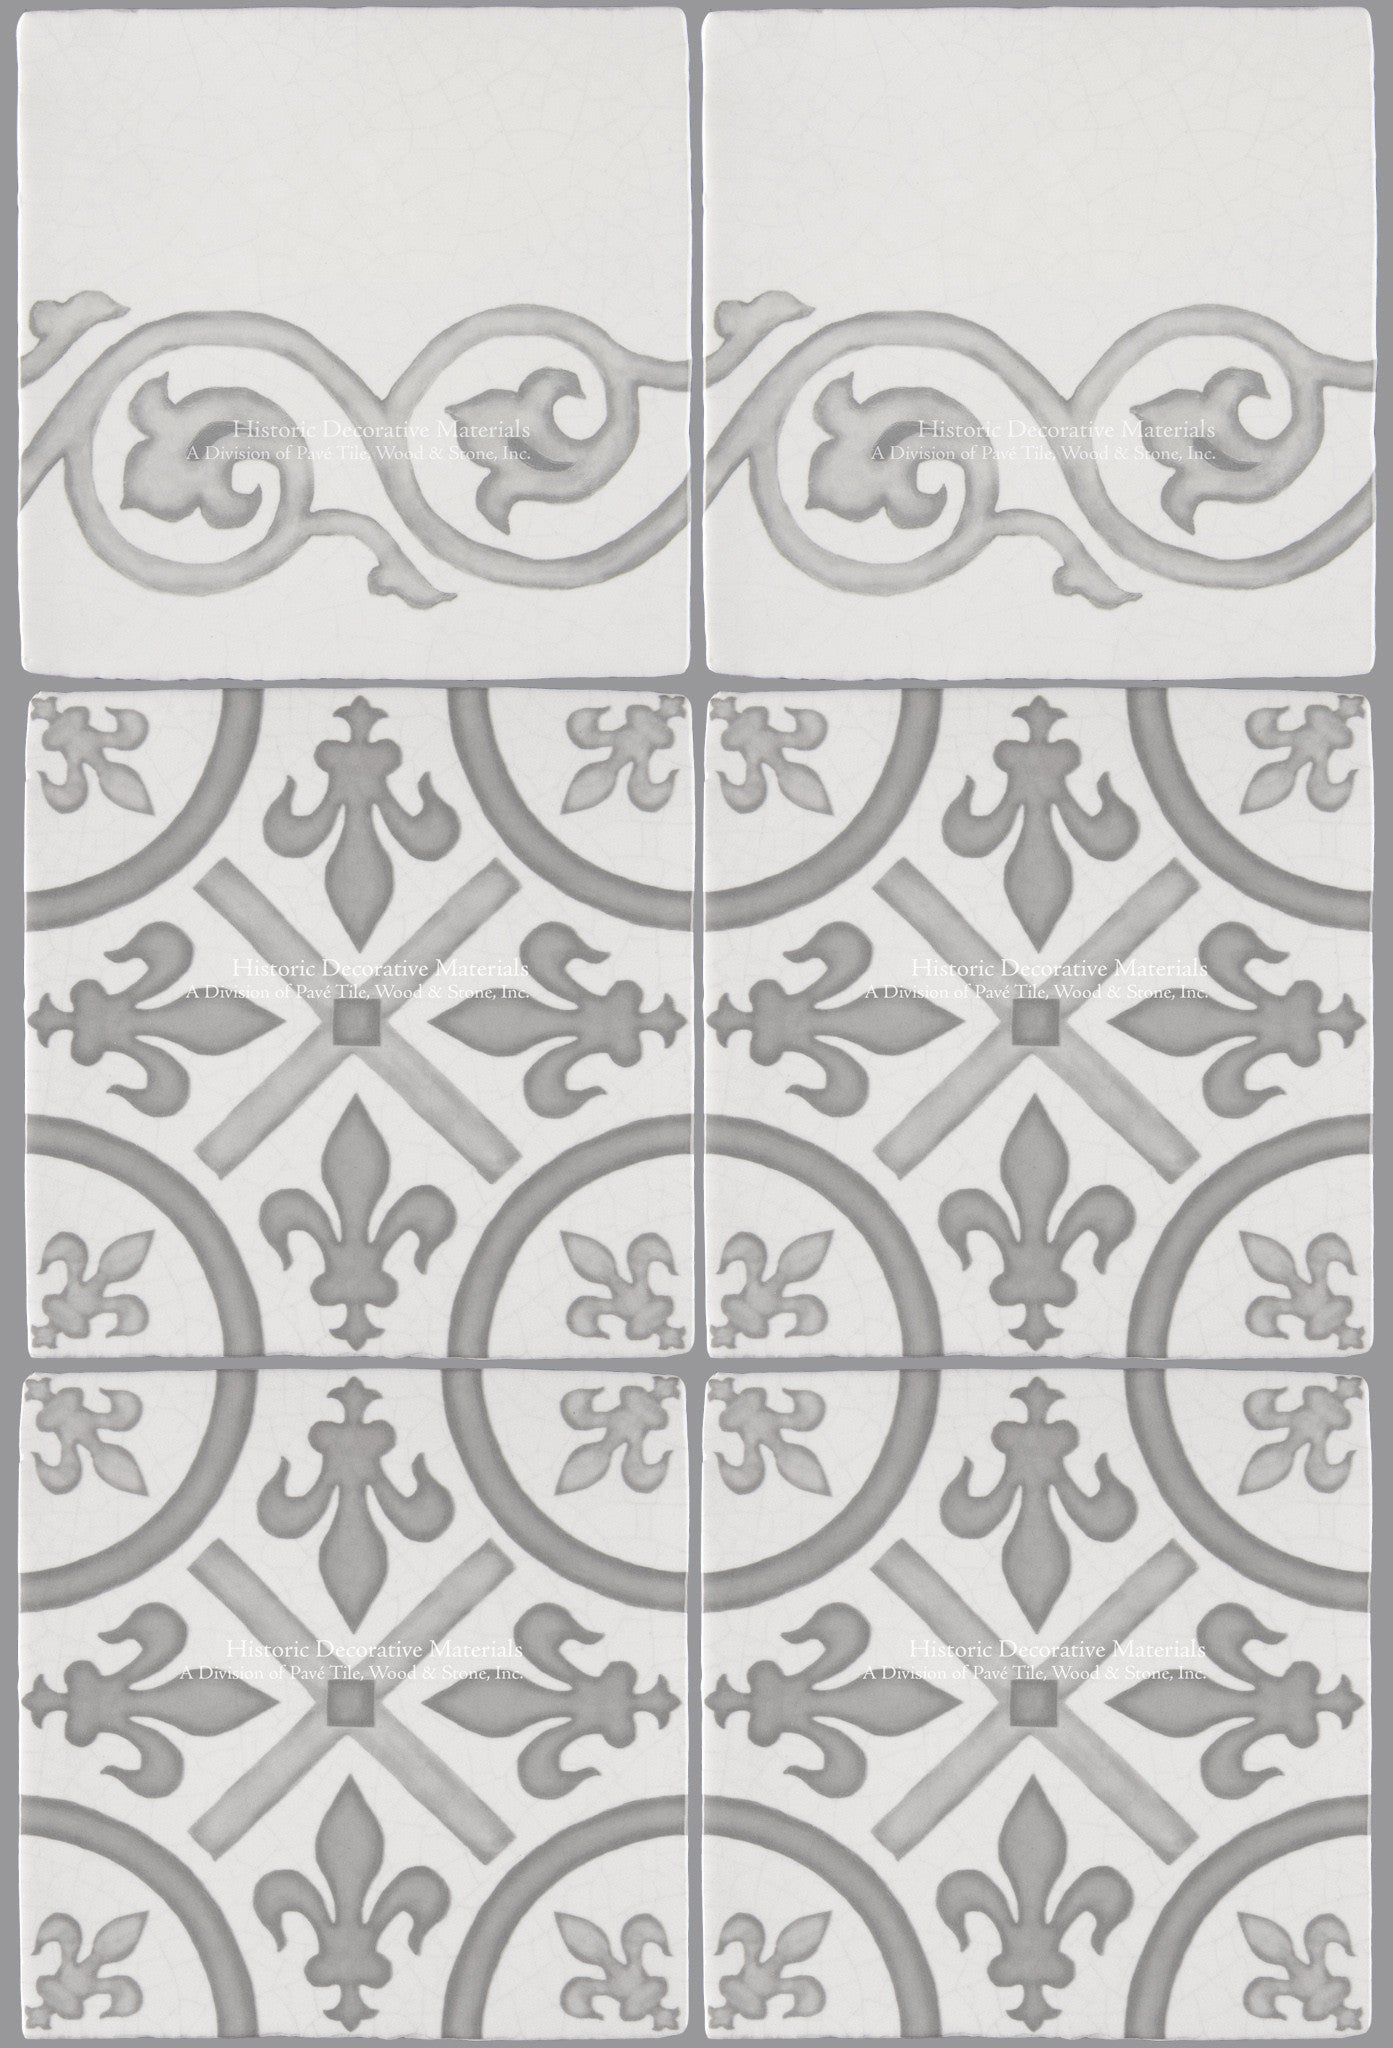 French encaustic decorative wall tile for kitchen bath and french encaustic decorative wall tile for kitchens baths and fireplace surround tiles amipublicfo Gallery